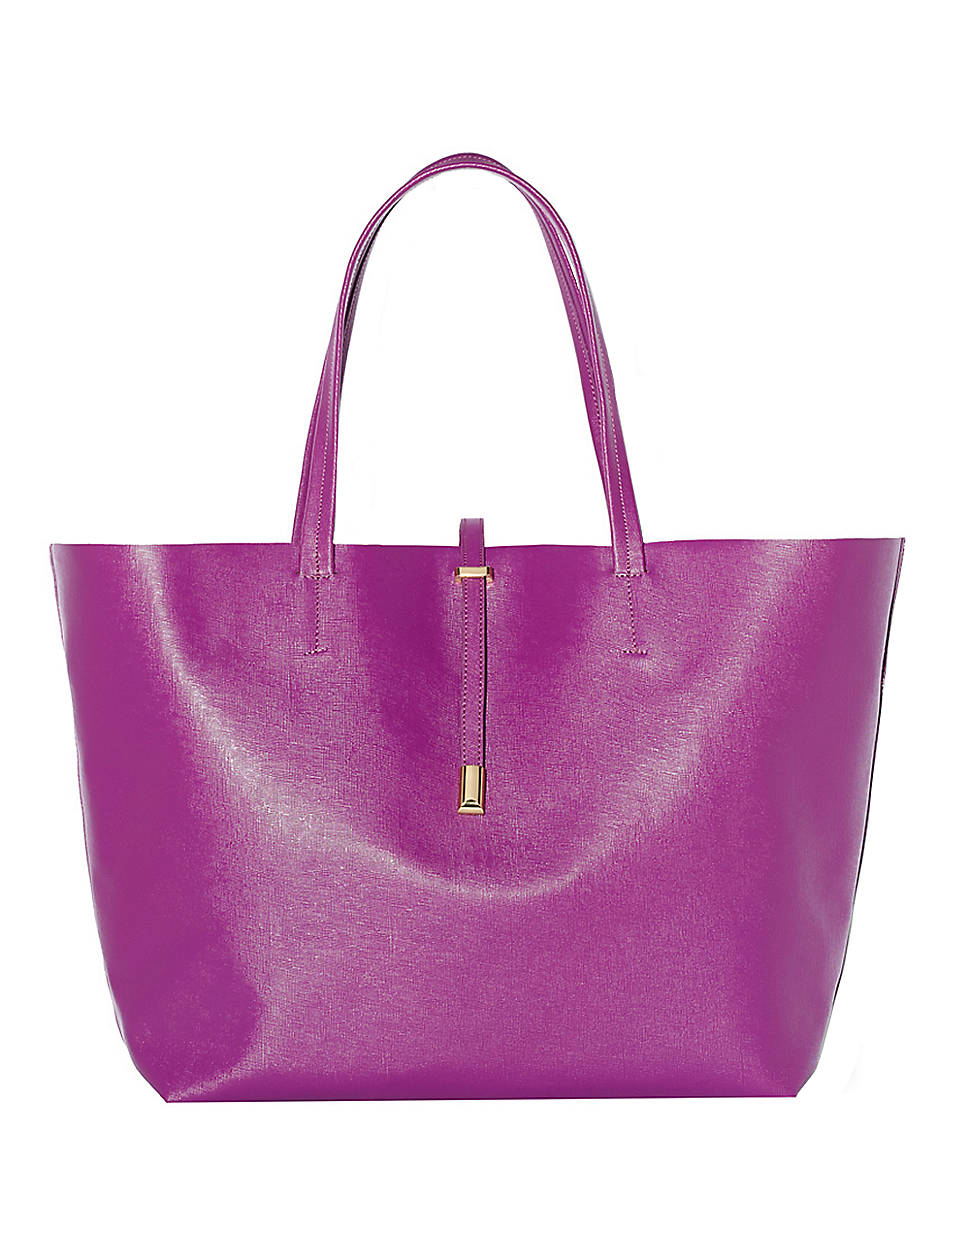 Vince Camuto Leila Leather Tote Bag In Purple Red Lyst